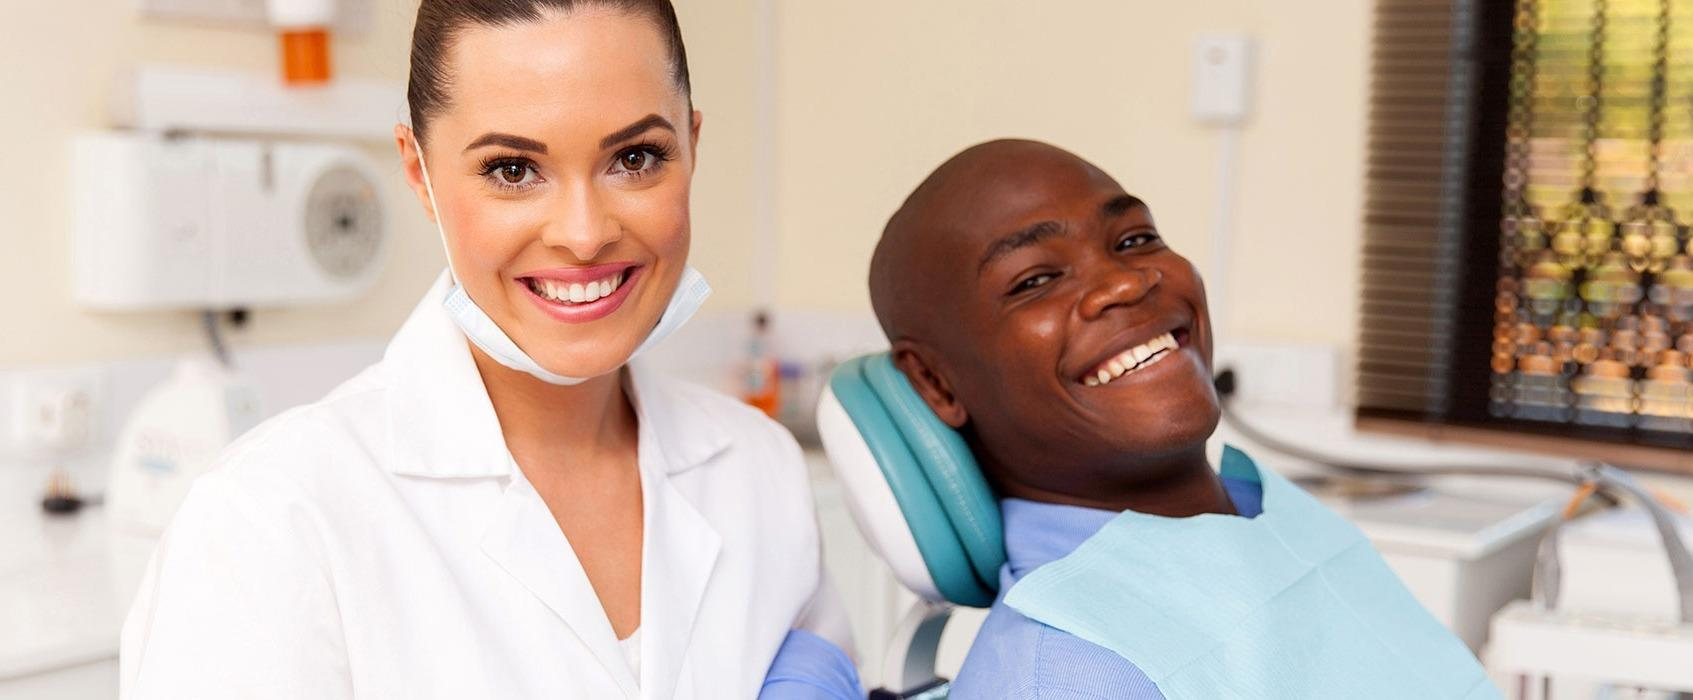 ClearBright Cosmetic Dentistry image 1